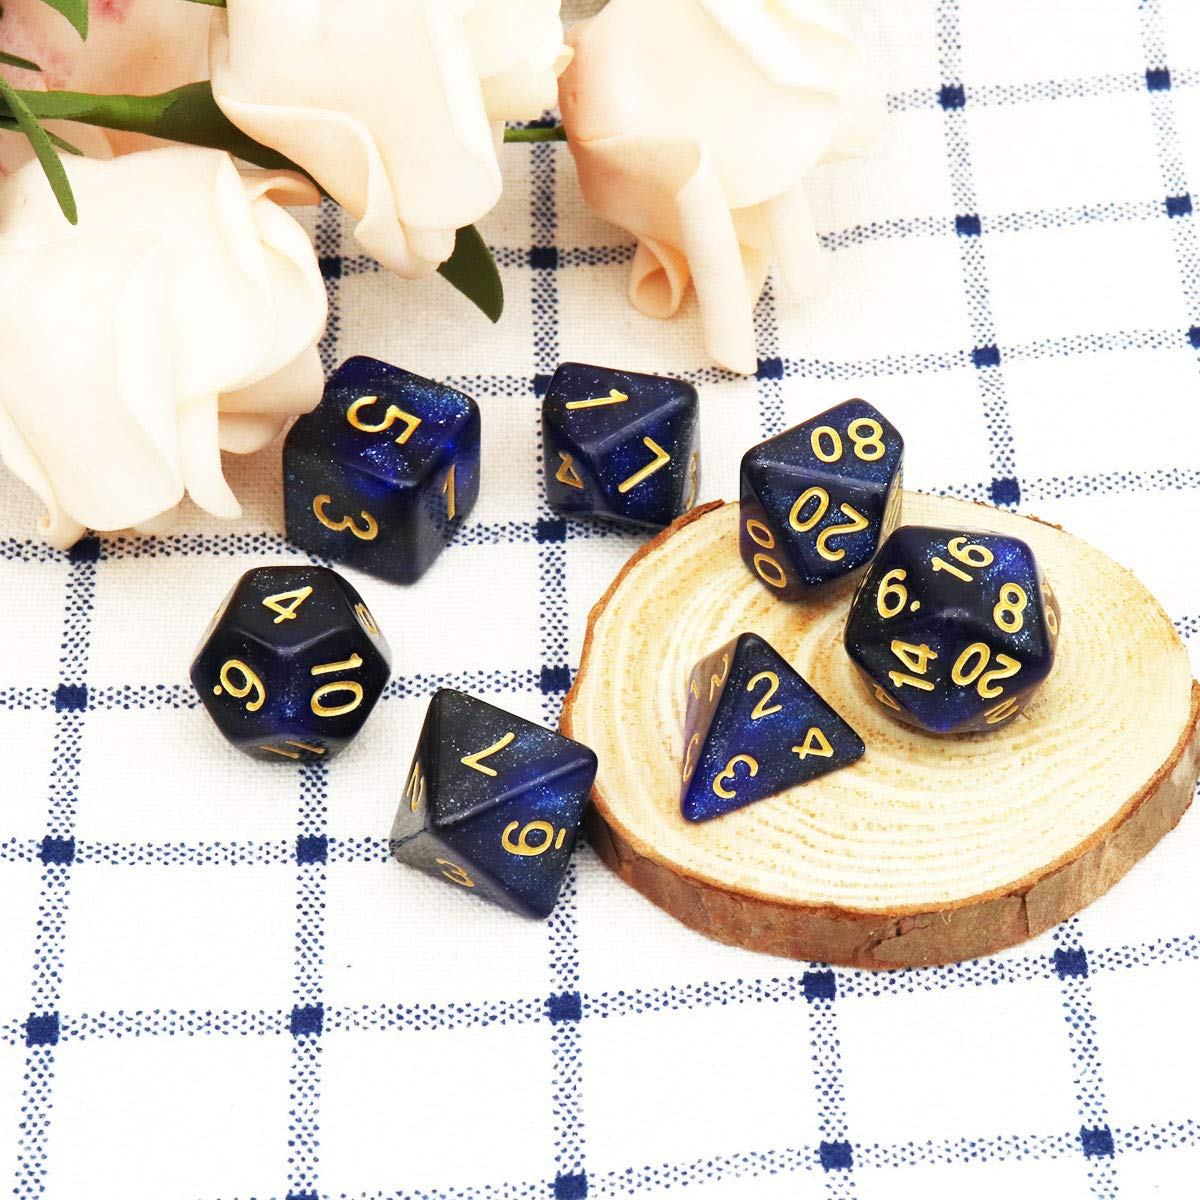 Haxtec 7PCS DND Dice Set Polyhedral D/&D Dice of D20 D12 D10 D8 D6 D4 for Dungeons and Dragons TTRPG Games White Cloud-Gold Numbers